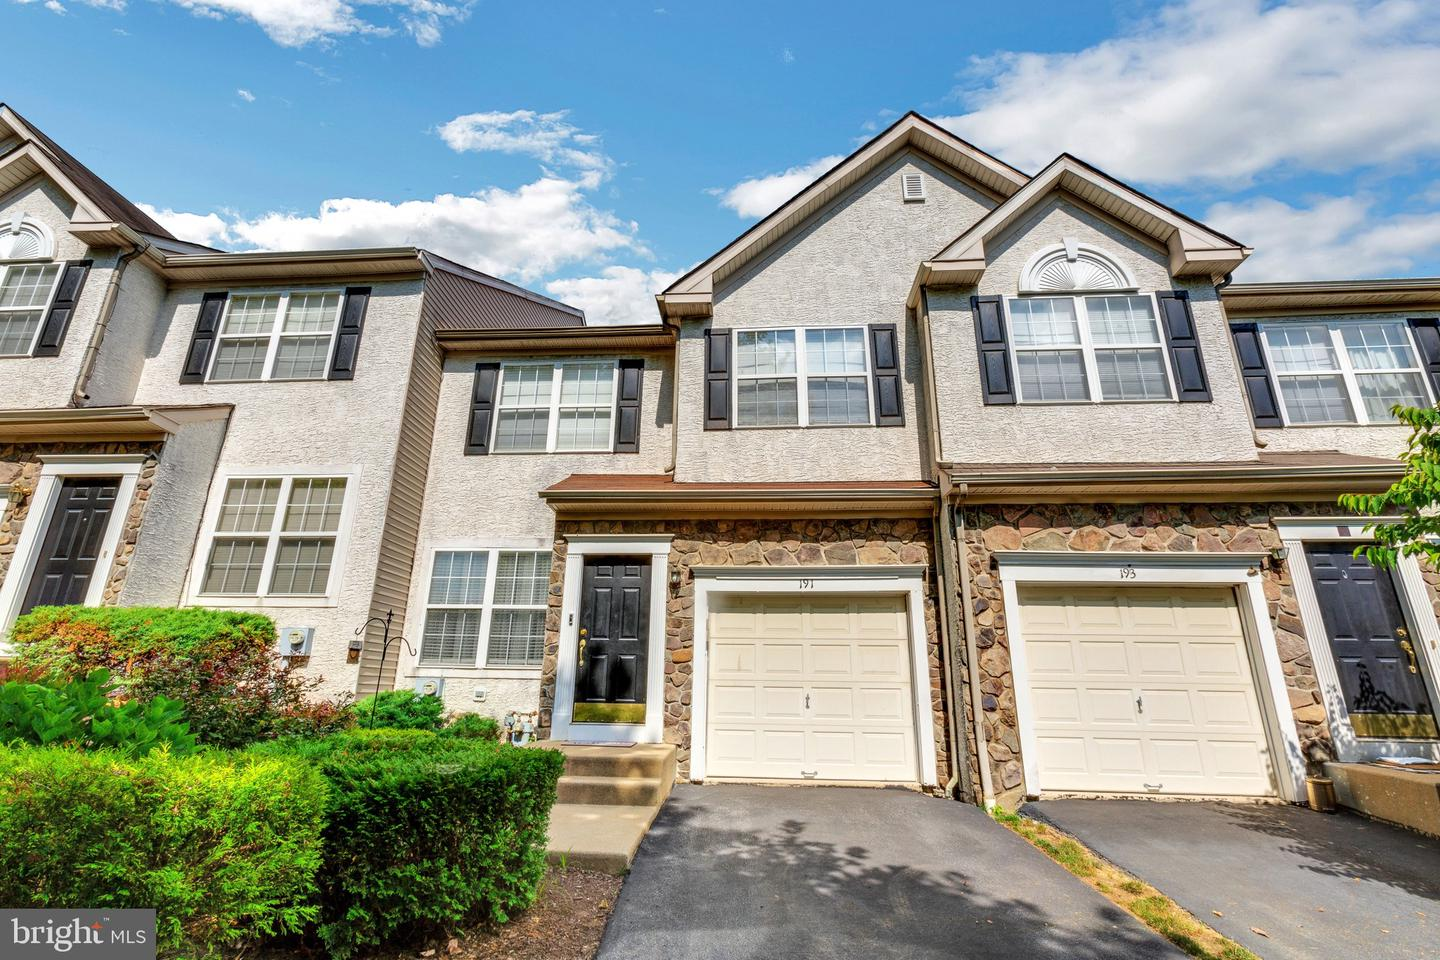 191 Mountain View Drive West Chester , PA 19380